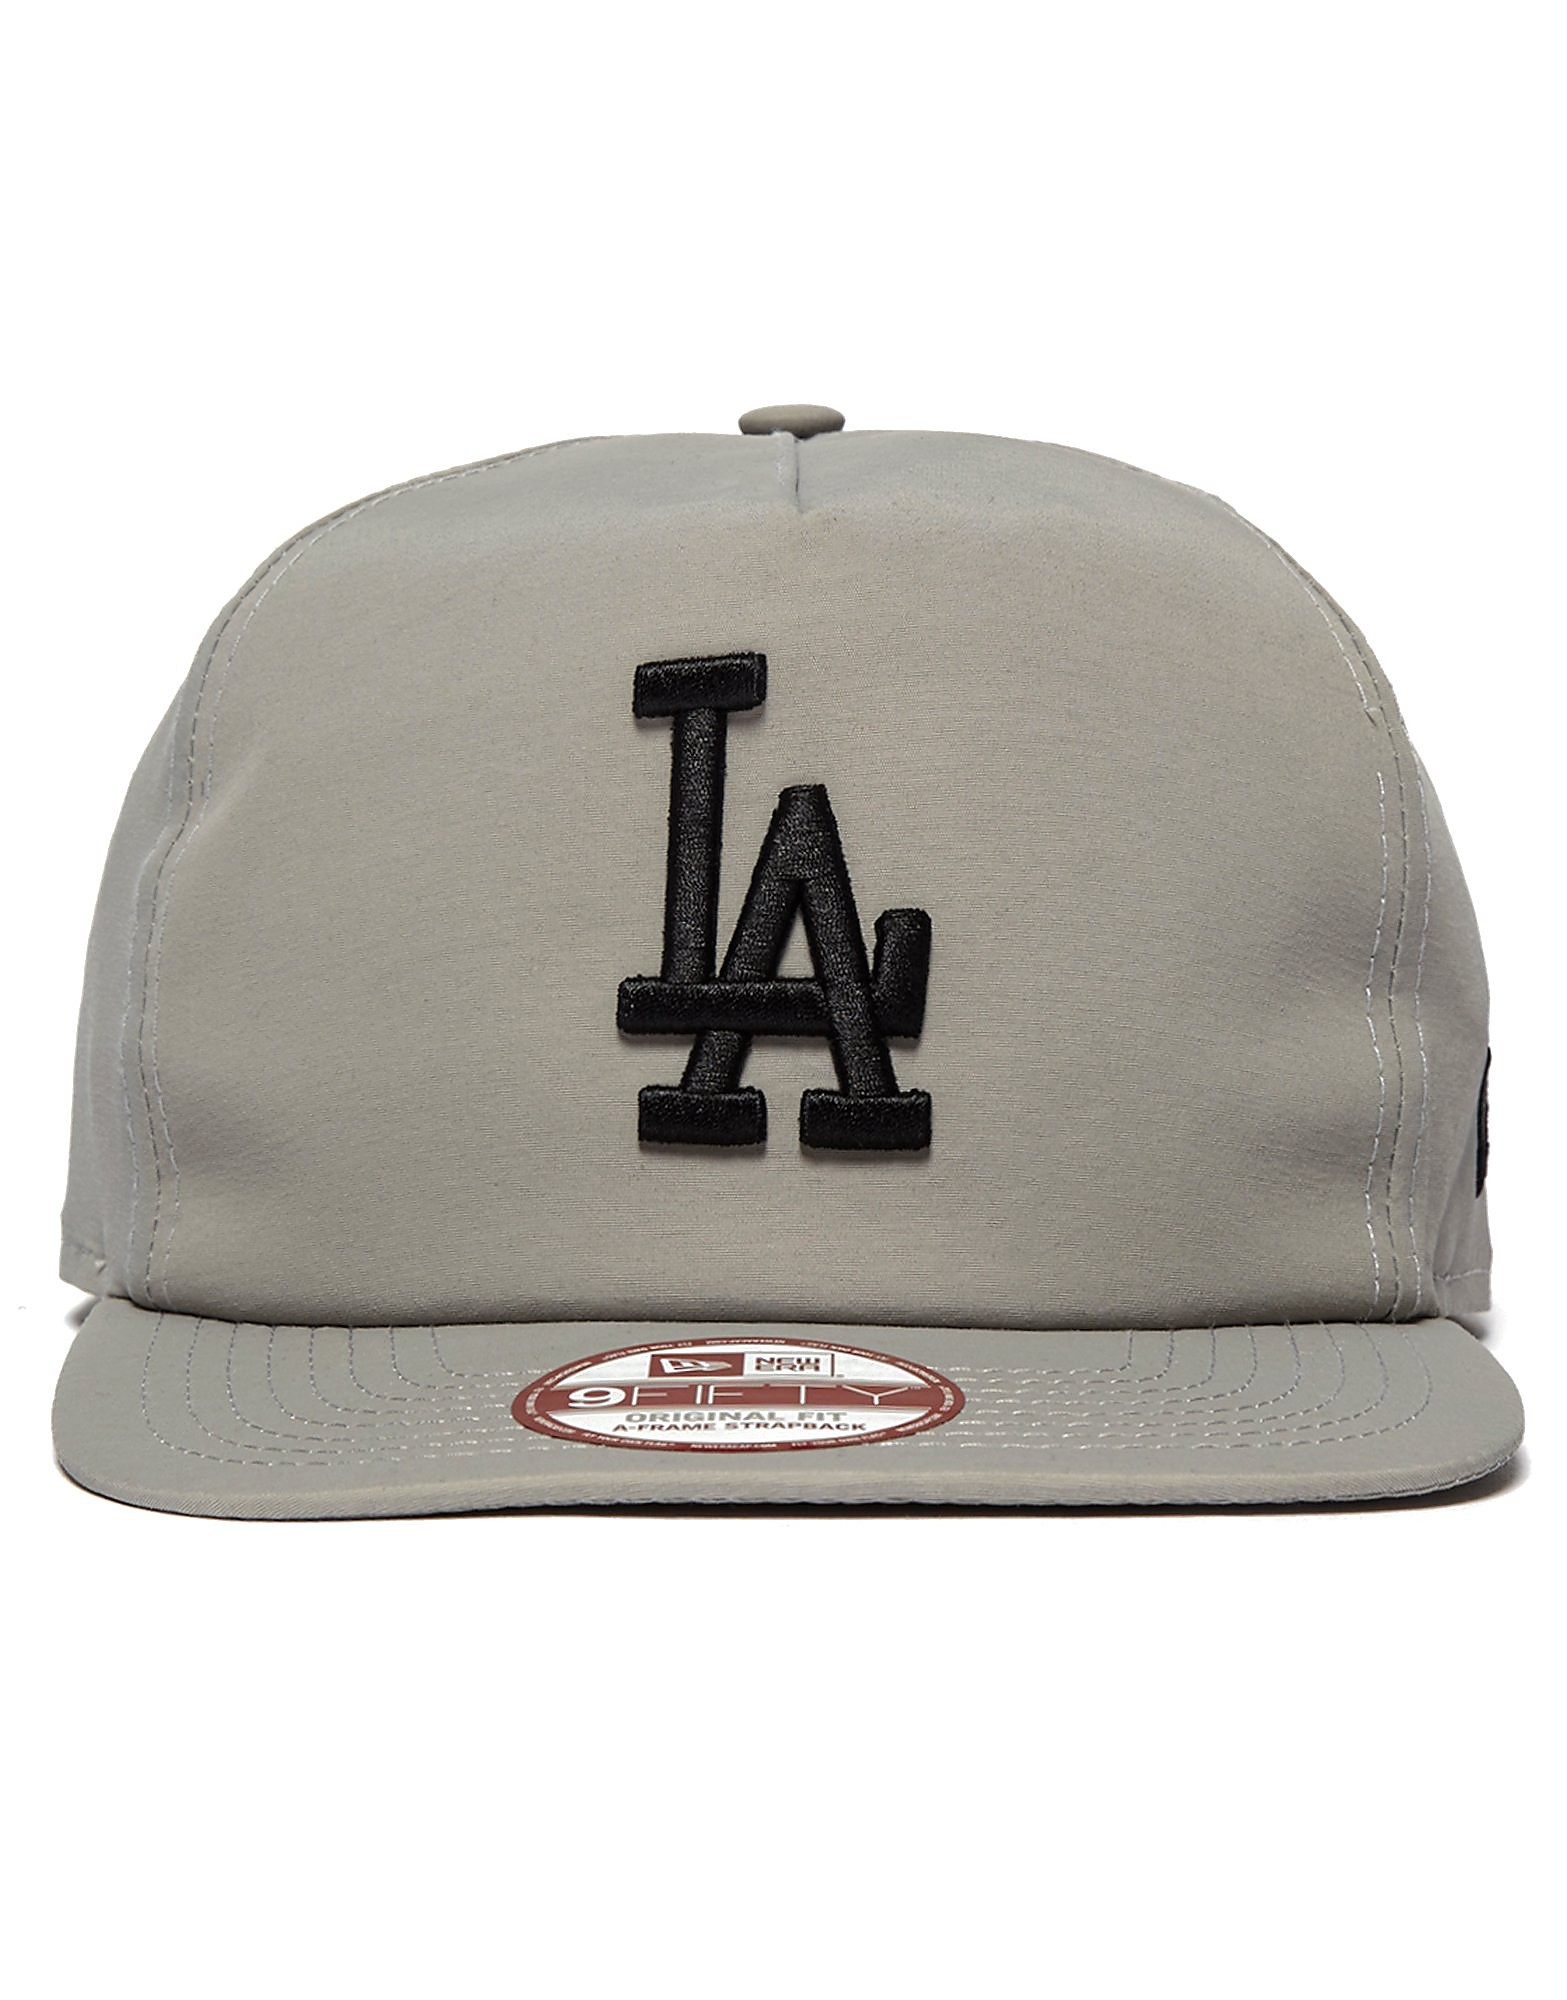 New Era MLB Los Angeles Dodgers 9FIFY Remix Snapback Cap